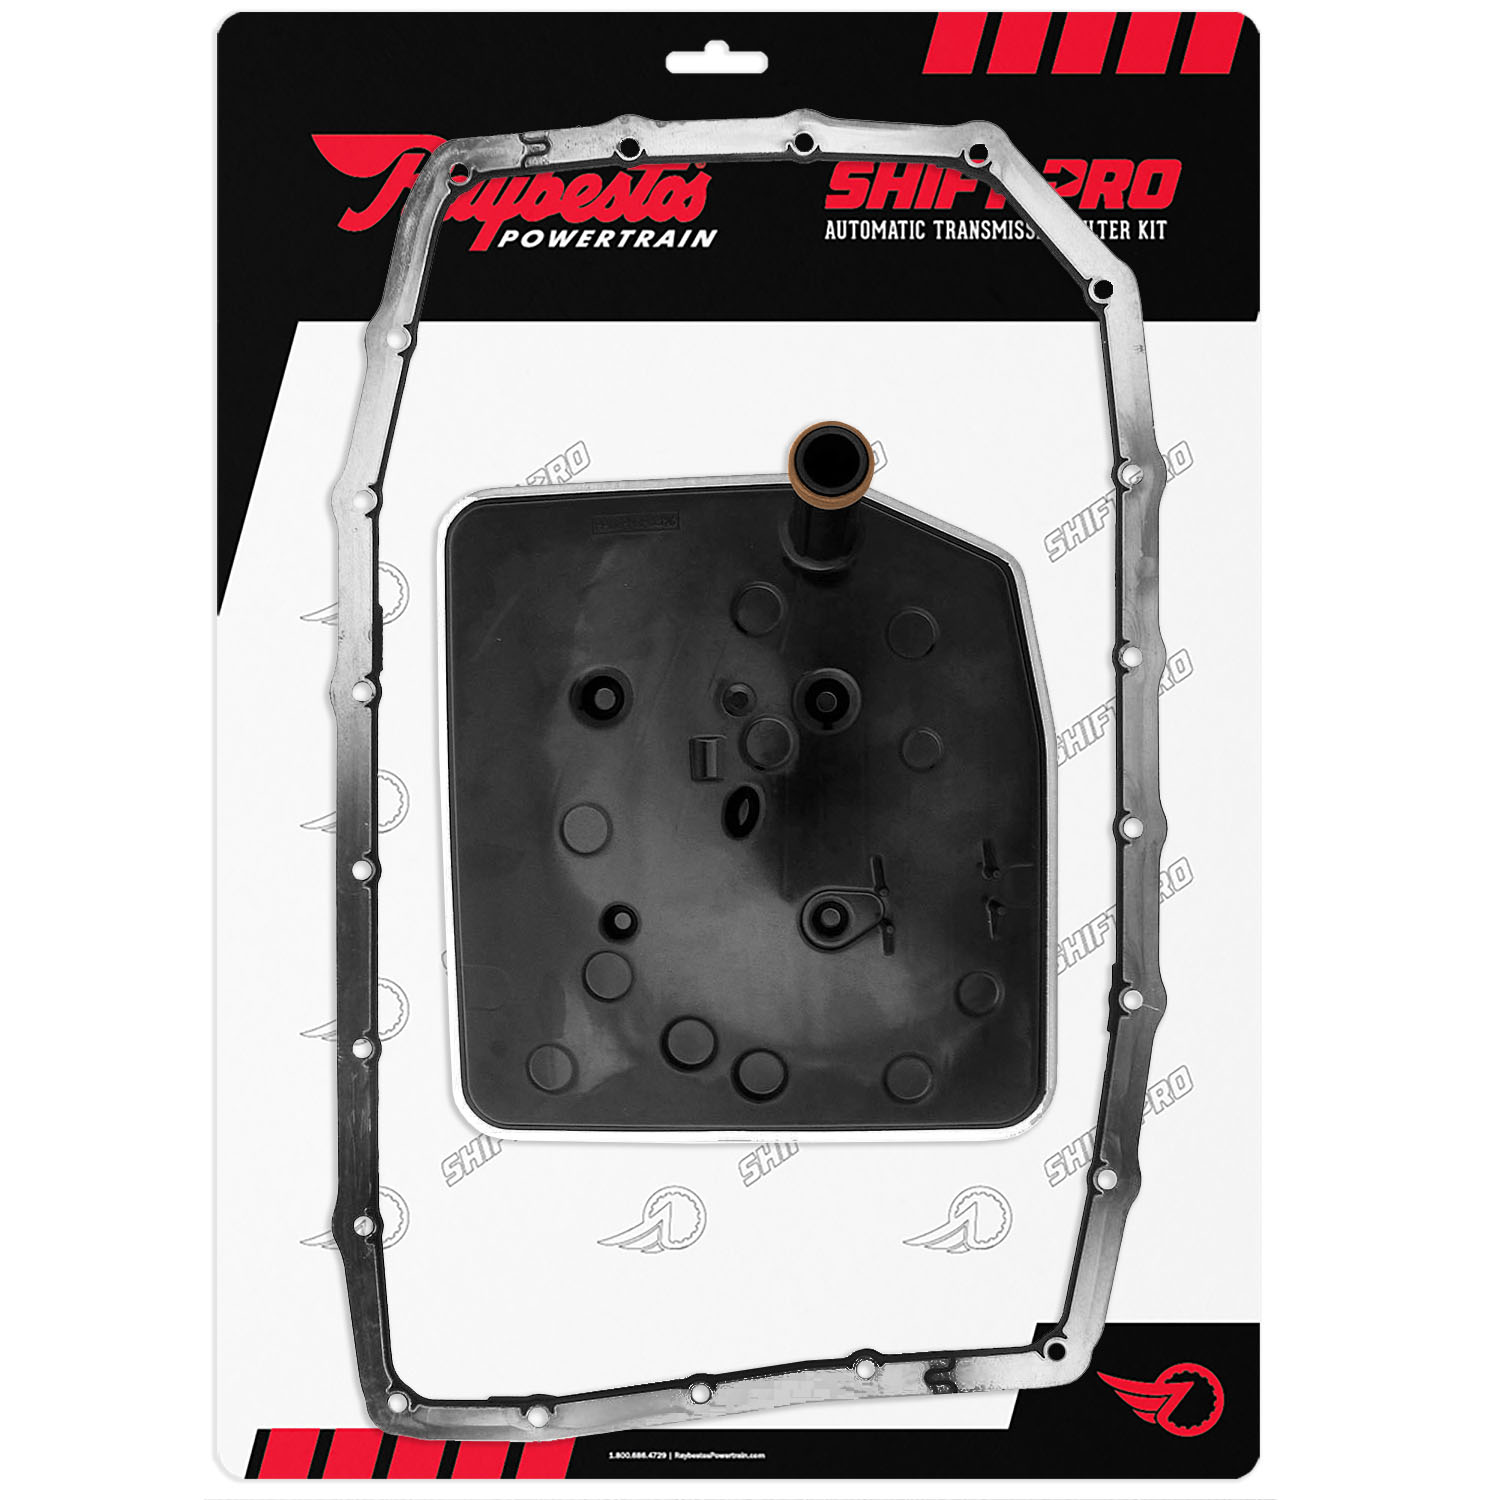 997263 | 2007-2010 Shift-Pro Automatic Transmission Filter Kit